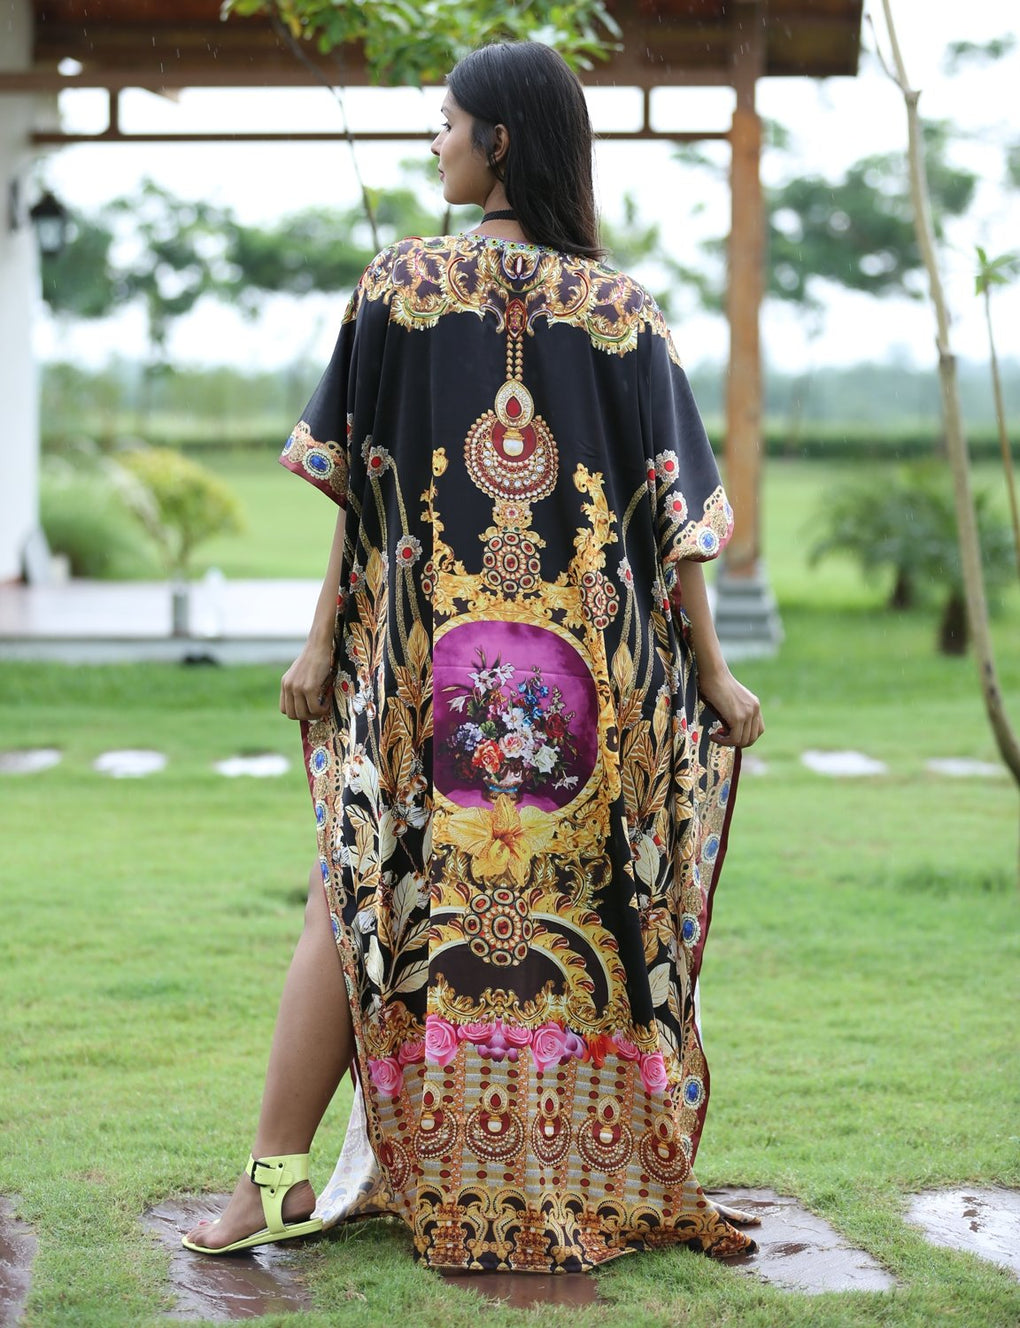 Silk looks and feel kaftan one piece dress on sale/jeweled/handmade/caftan beach cover up hot look luxuries Resort party kaftan - Silk kaftan